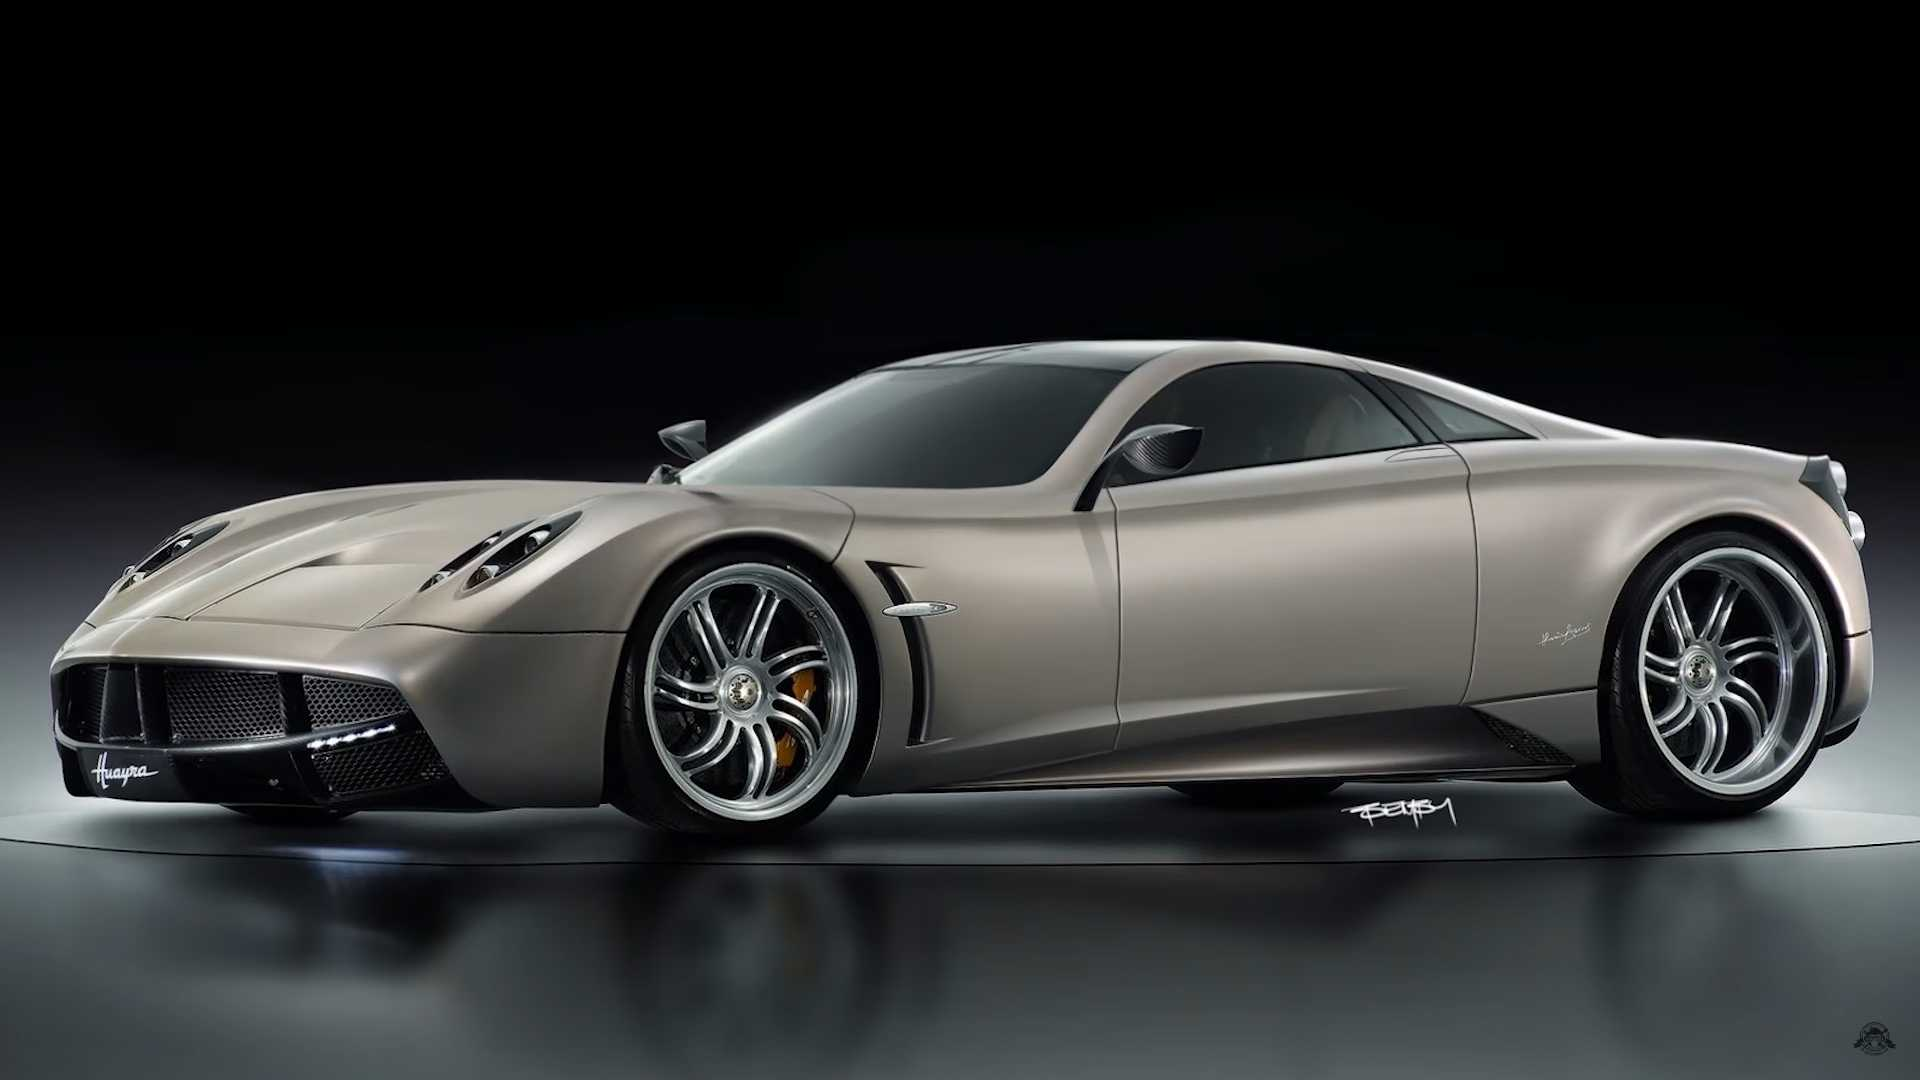 Pagani Huayra Would Look Great With The Engine In The Front